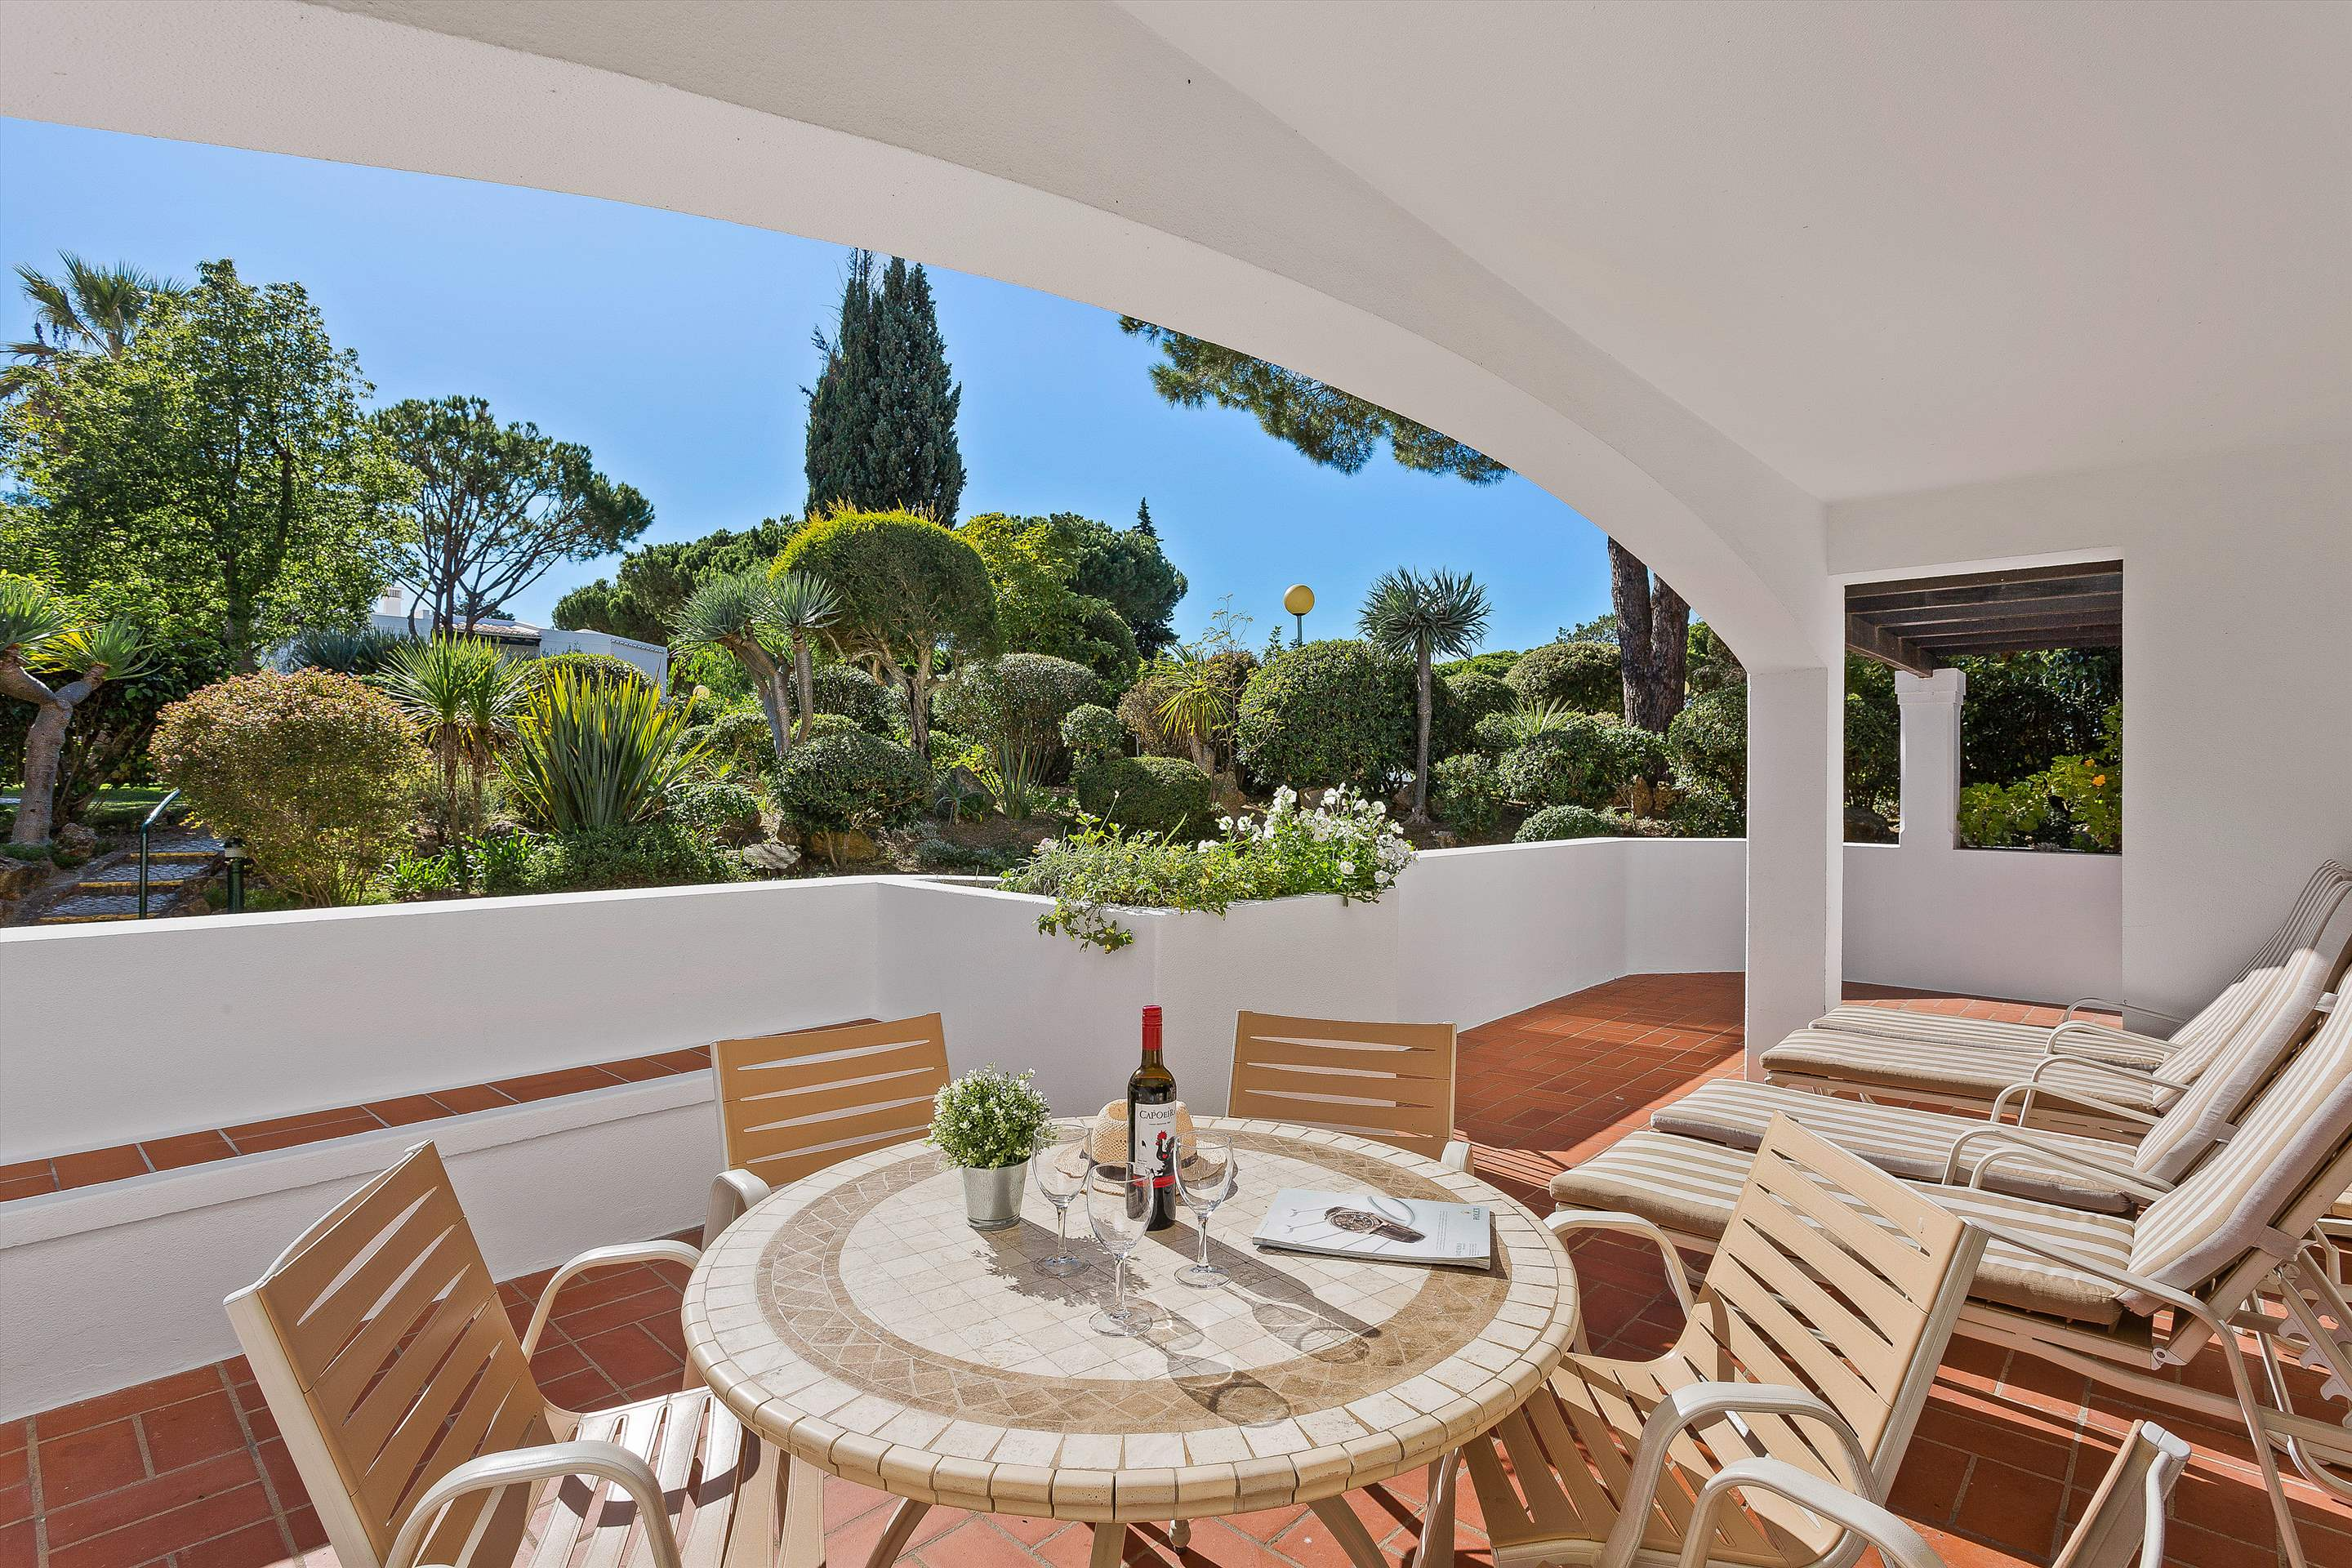 Four Seasons Country Club 2 bed, Superior - Saturday Arrival, 2 bedroom apartment in Four Seasons Country Club, Algarve Photo #2